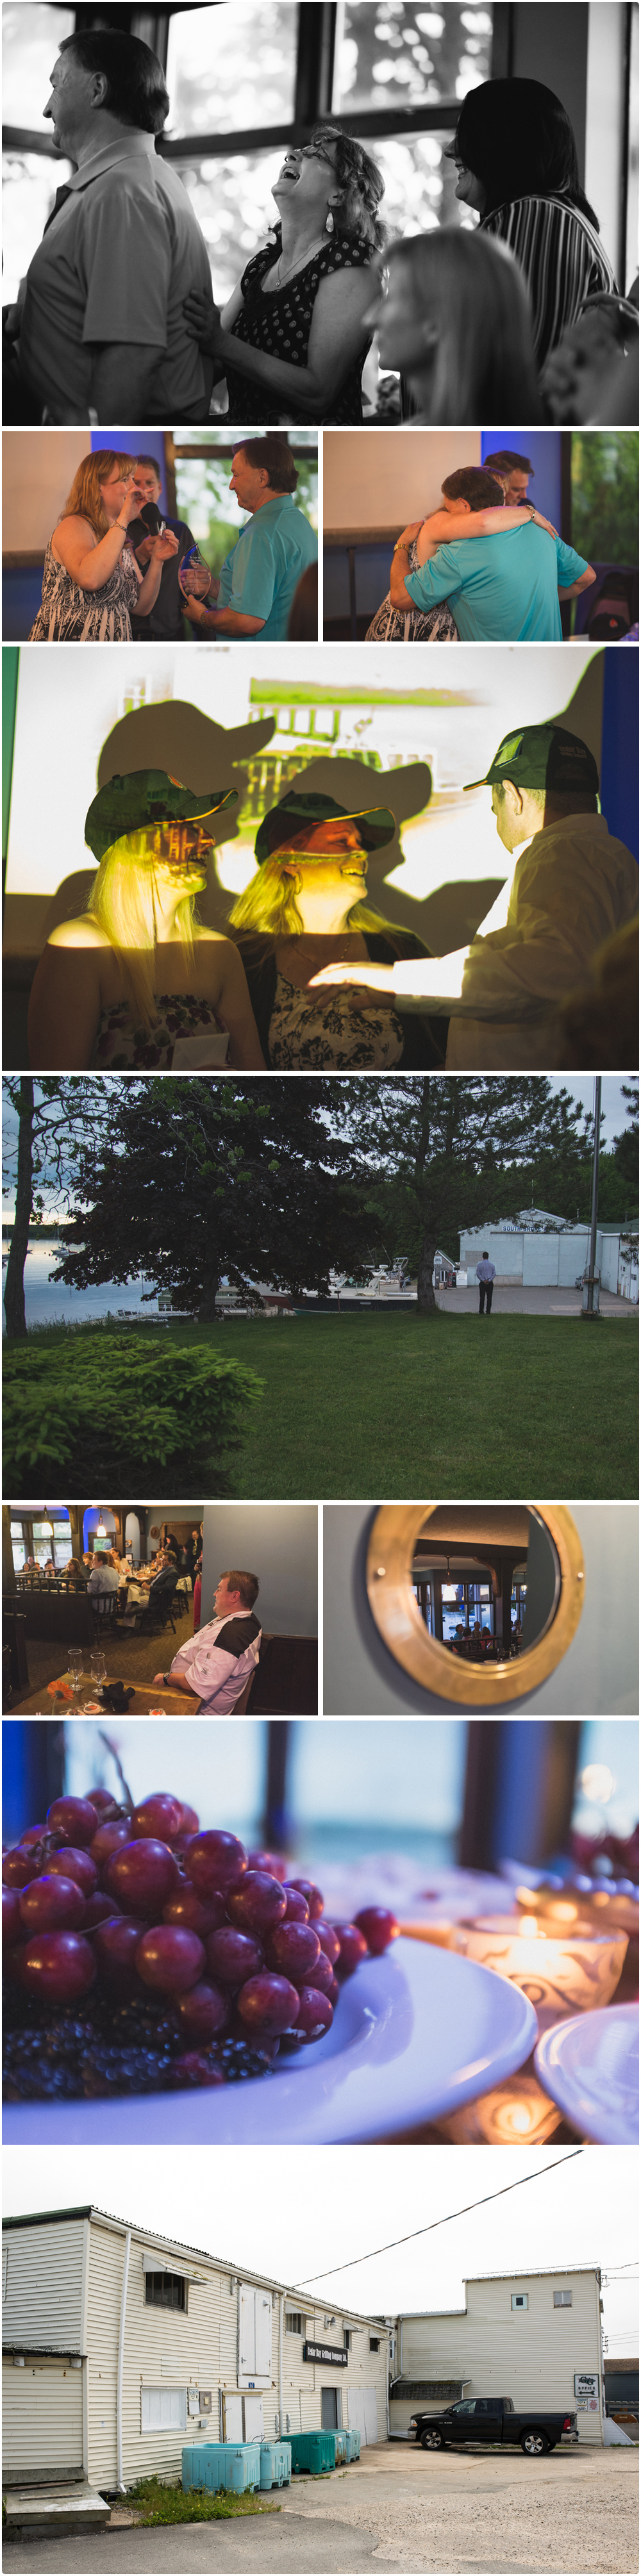 halifax wedding photographer one blue fish cedar bay grilling commercial